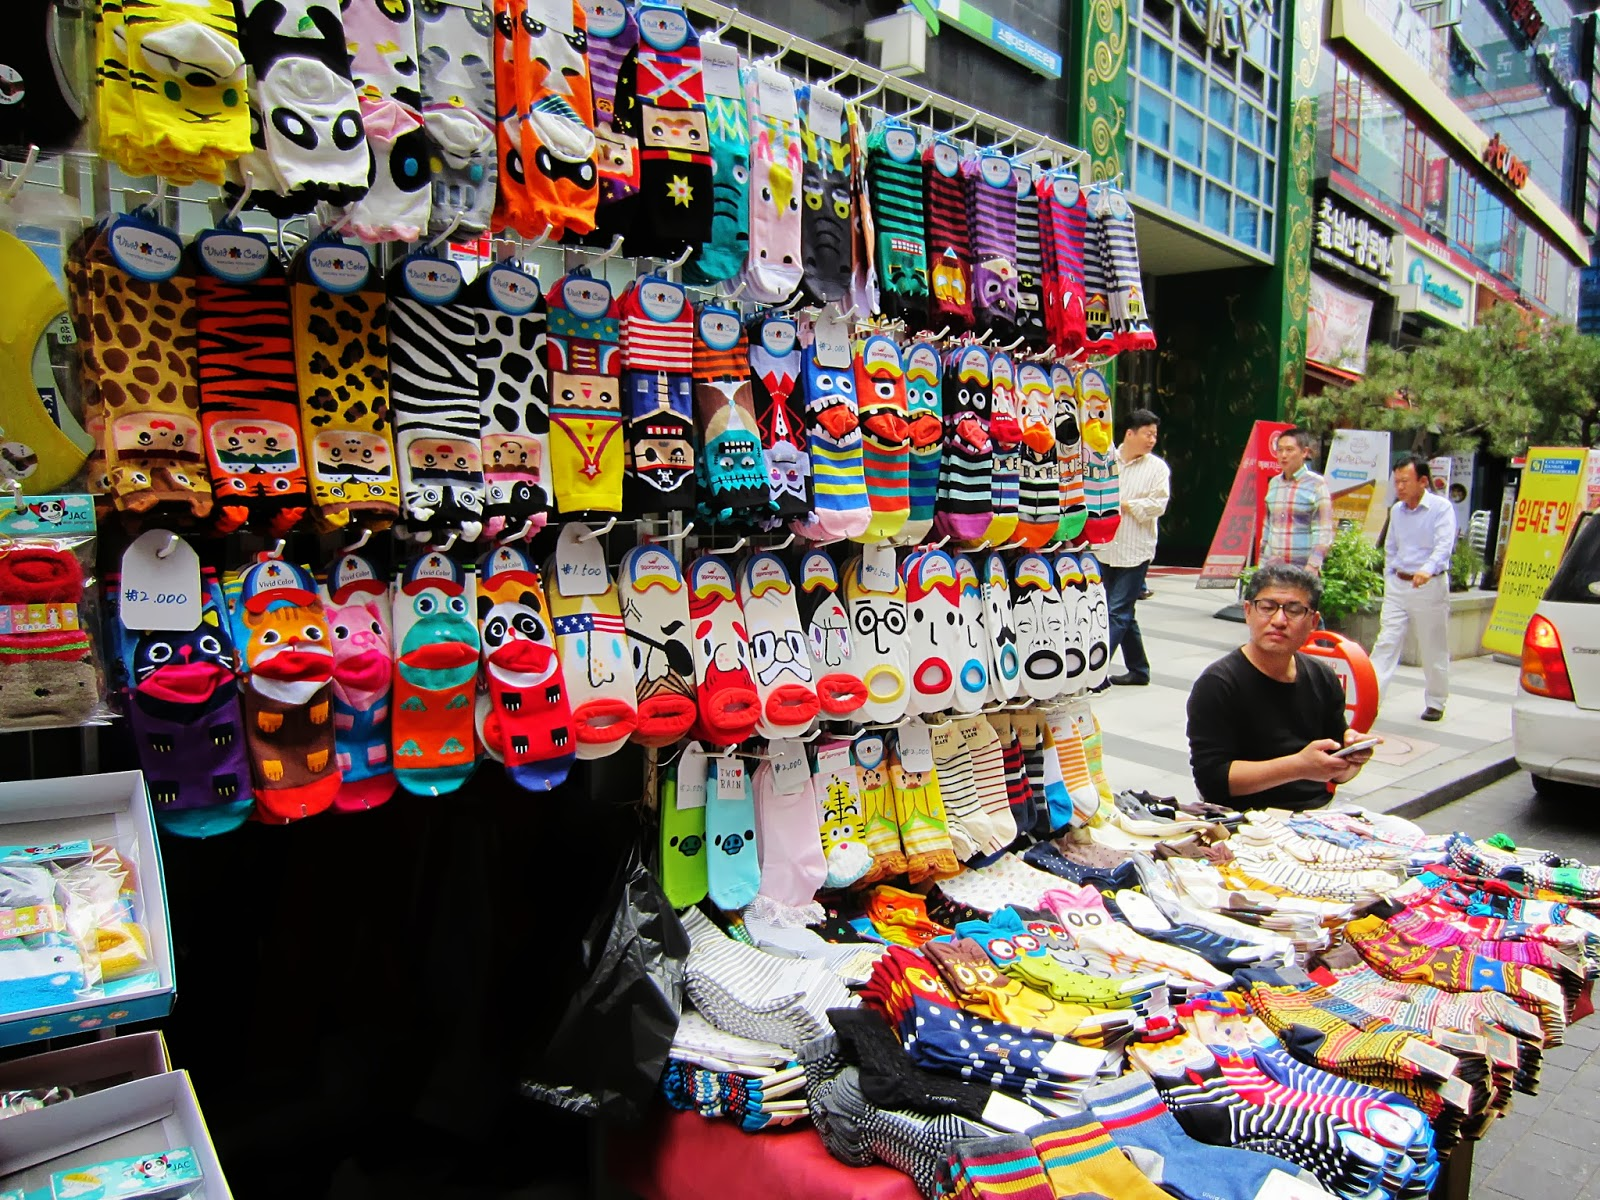 It's known for street shopping where you can buy cute trinkets, fashionable clothes, Kpop paraphernalia and lots of cute socks. (Photo credit: Touristonweekends)